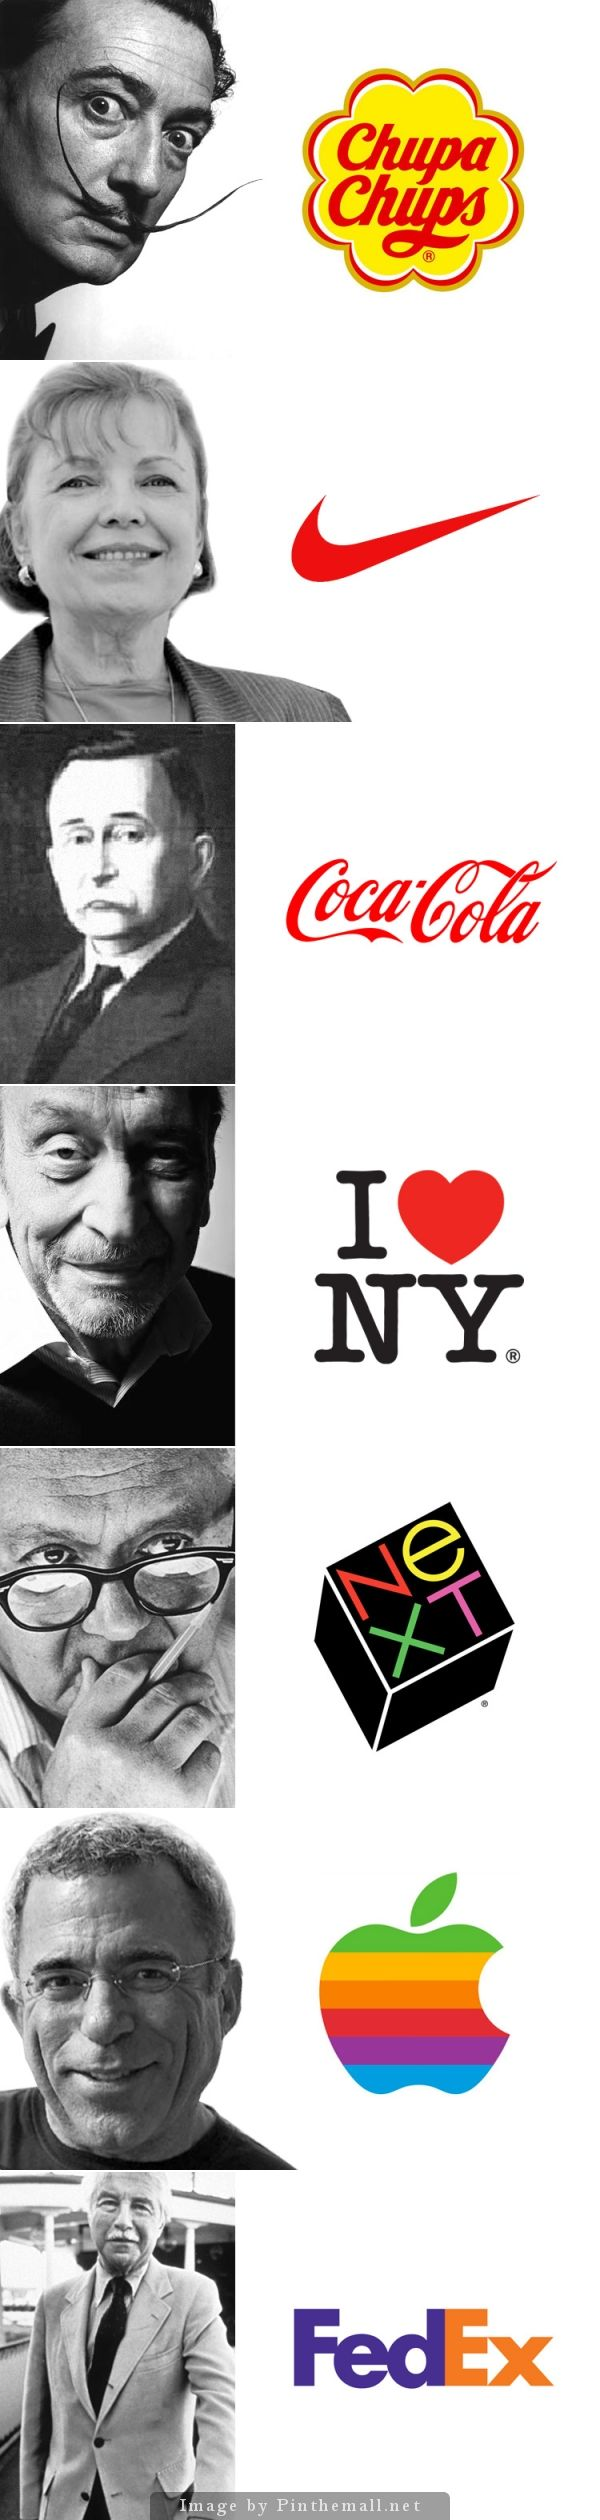 7 most famous logos and how they were created - Featuring: Salvador Dali / Chupa Chups, Carolyn Davidson / Nike, Frank Mason Robinson / Coca-Cola, Milton Glaser / I Love NY, Paul Rand / NeXT, Rob Janoff / Apple, Walter Landauer / FedEx